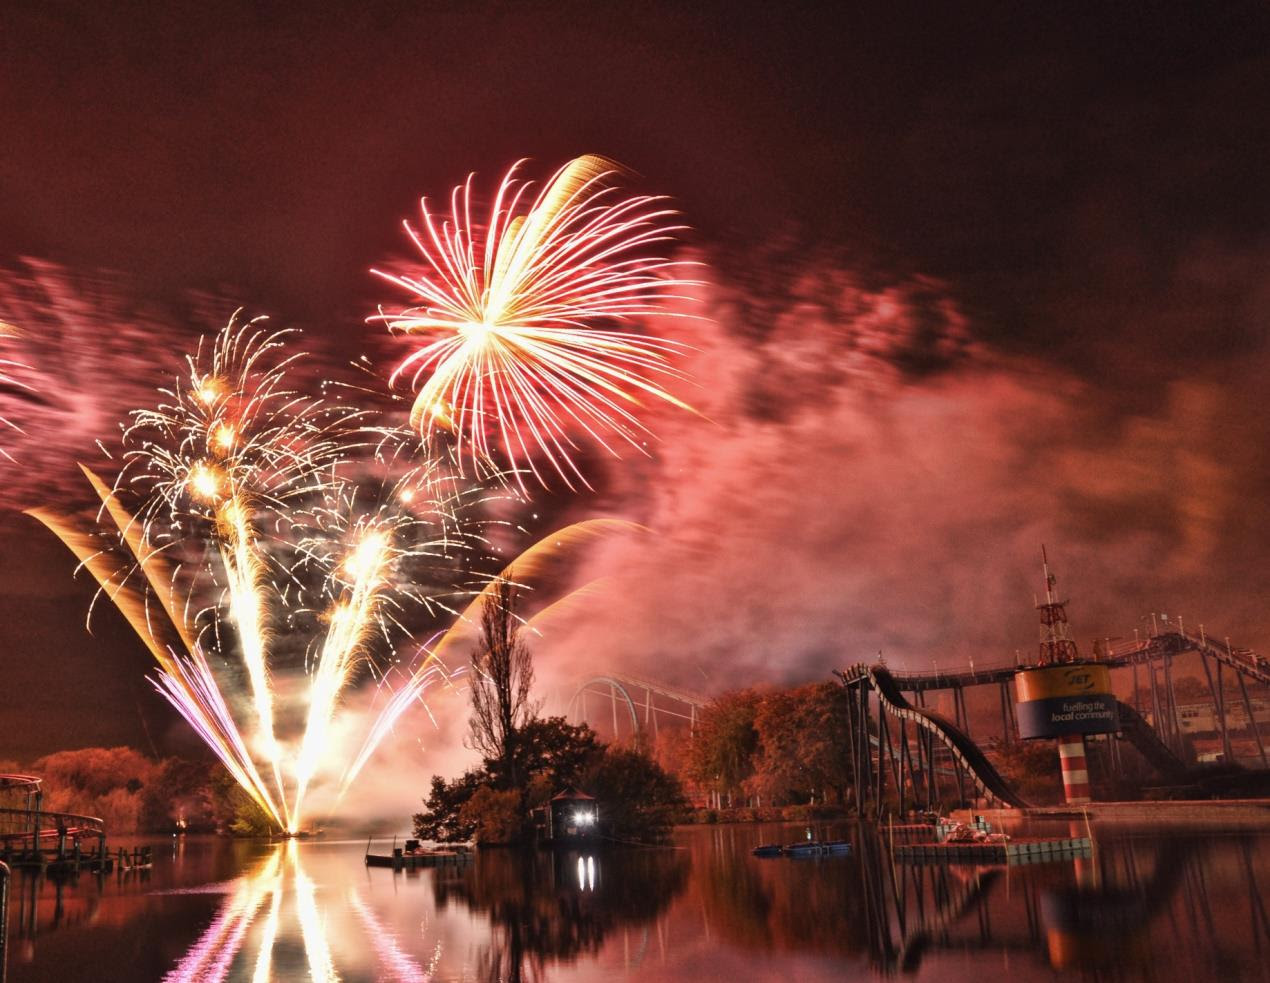 Drayton Manor Theme Park Fireworks Spectacular 2 credit Ashley Gardner